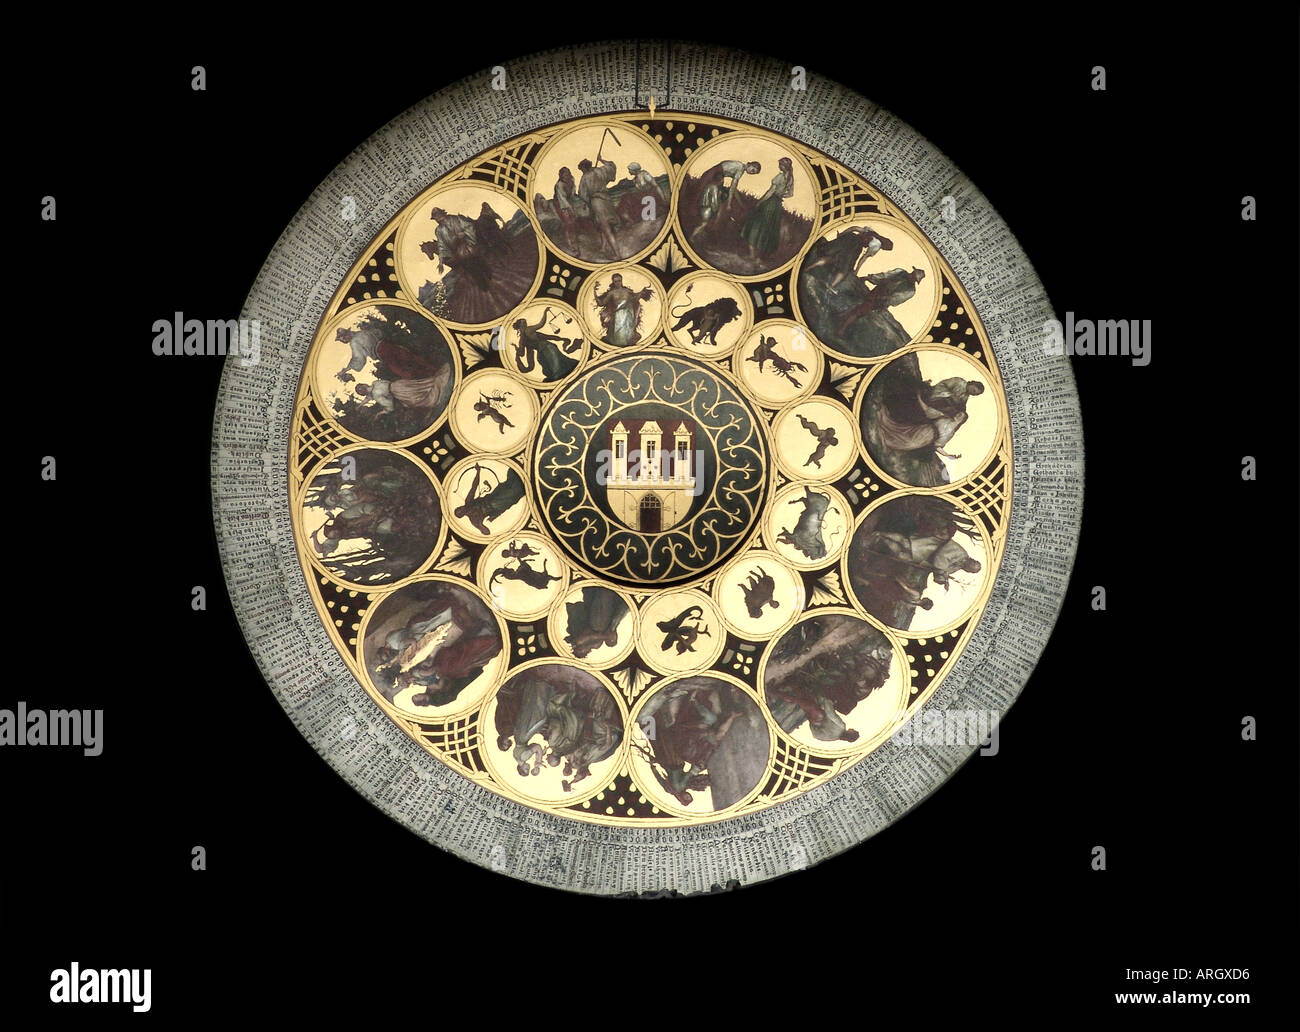 Detail of Famous Astronomical Clock Old Square in Prague, Czech Republic.  Cutout on black background - Stock Image